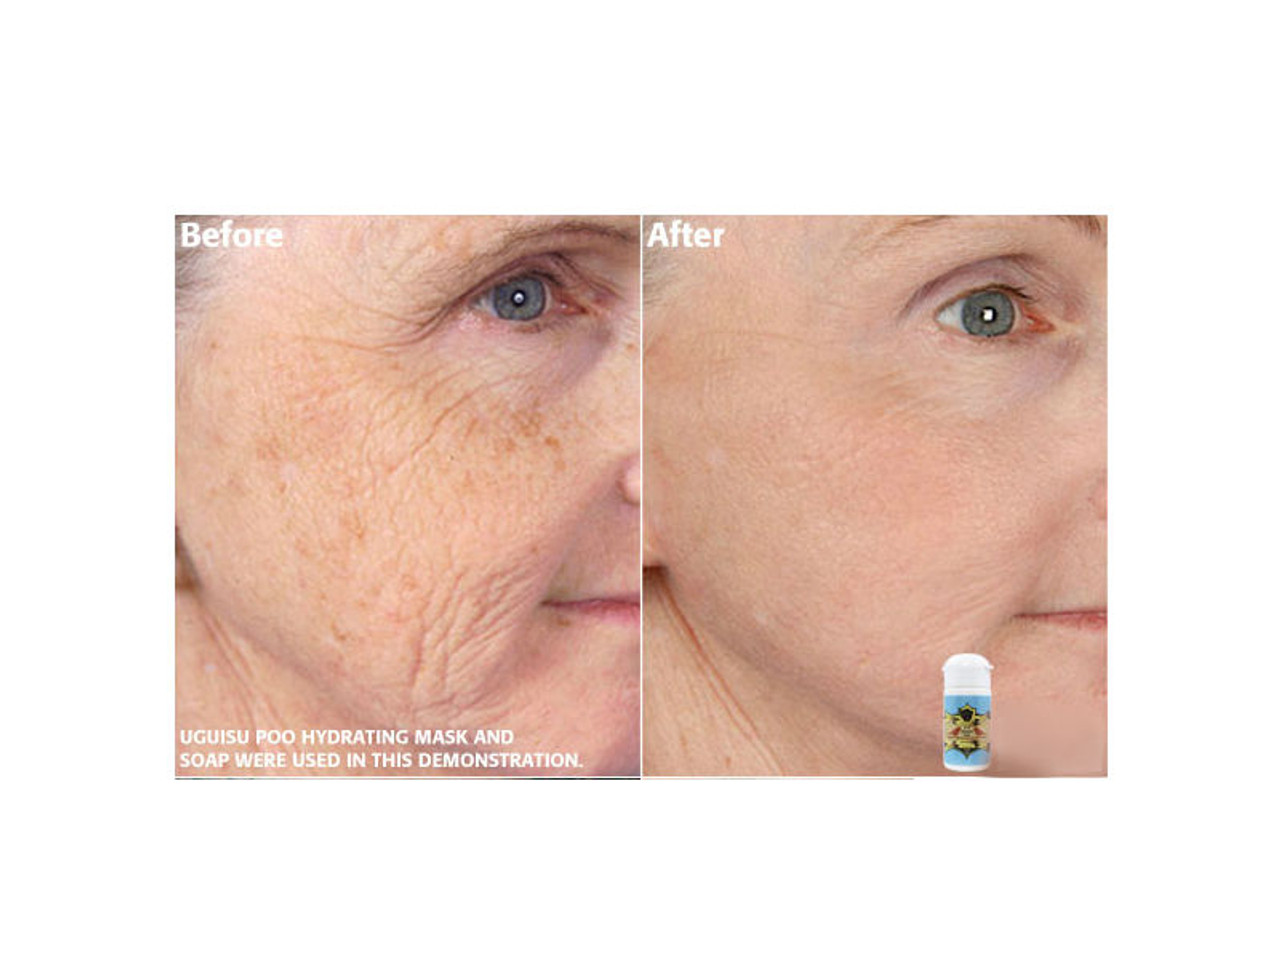 Before and after pictures of the Hydrating Mask